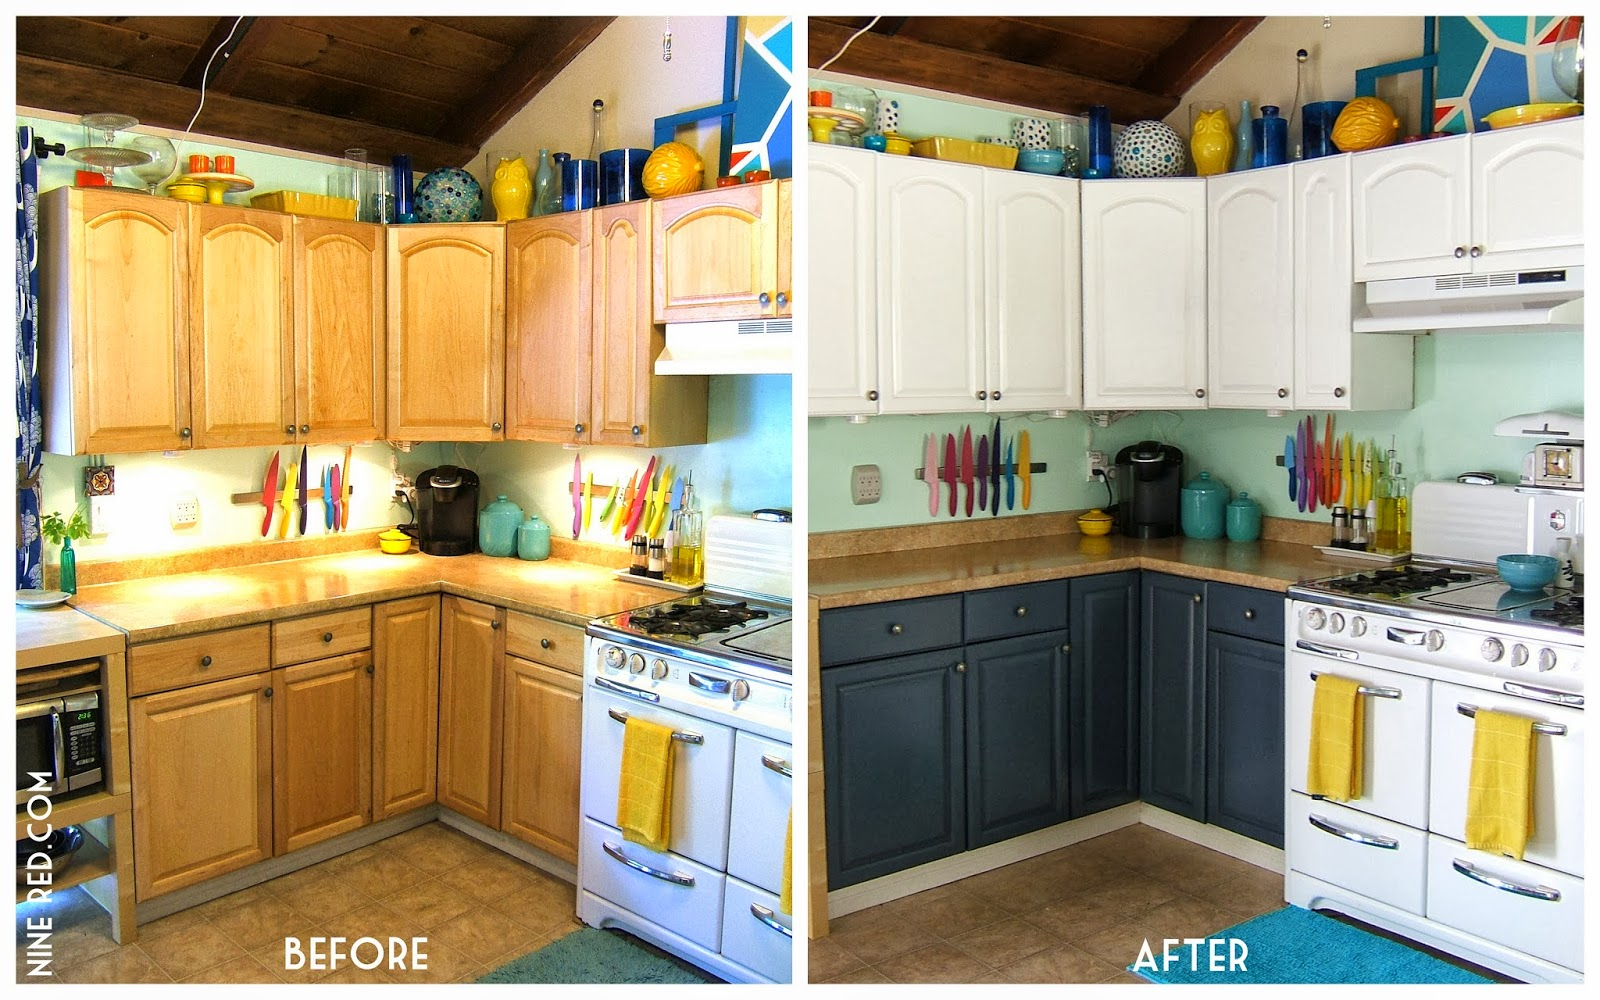 Painting the Kitchen Cabinets: Part 2 & Nine Red: Painting the Kitchen Cabinets: Part 2 kurilladesign.com